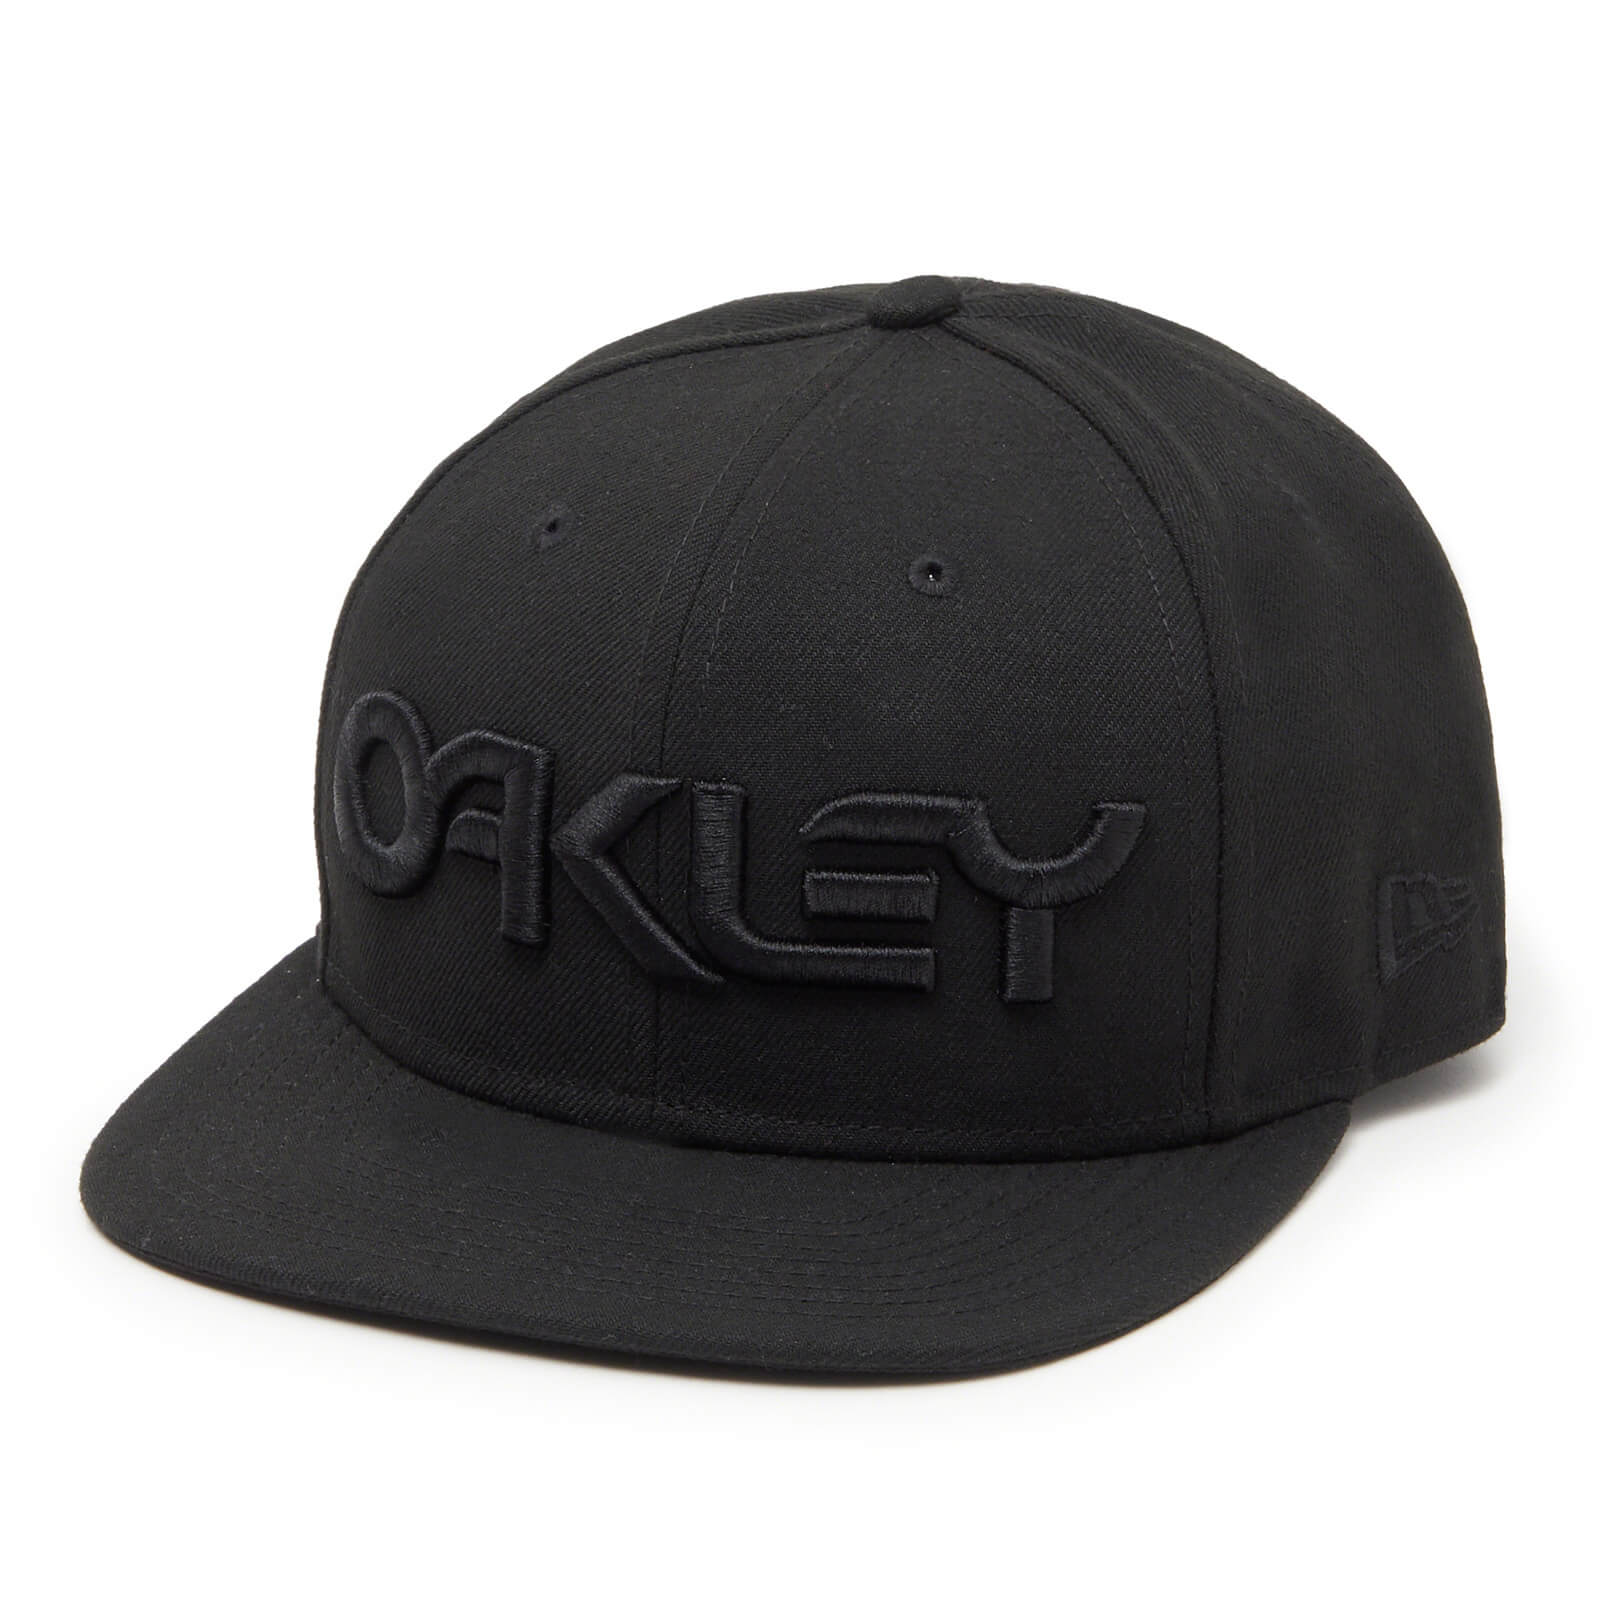 Oakley Mark II Novelty Cap - Black